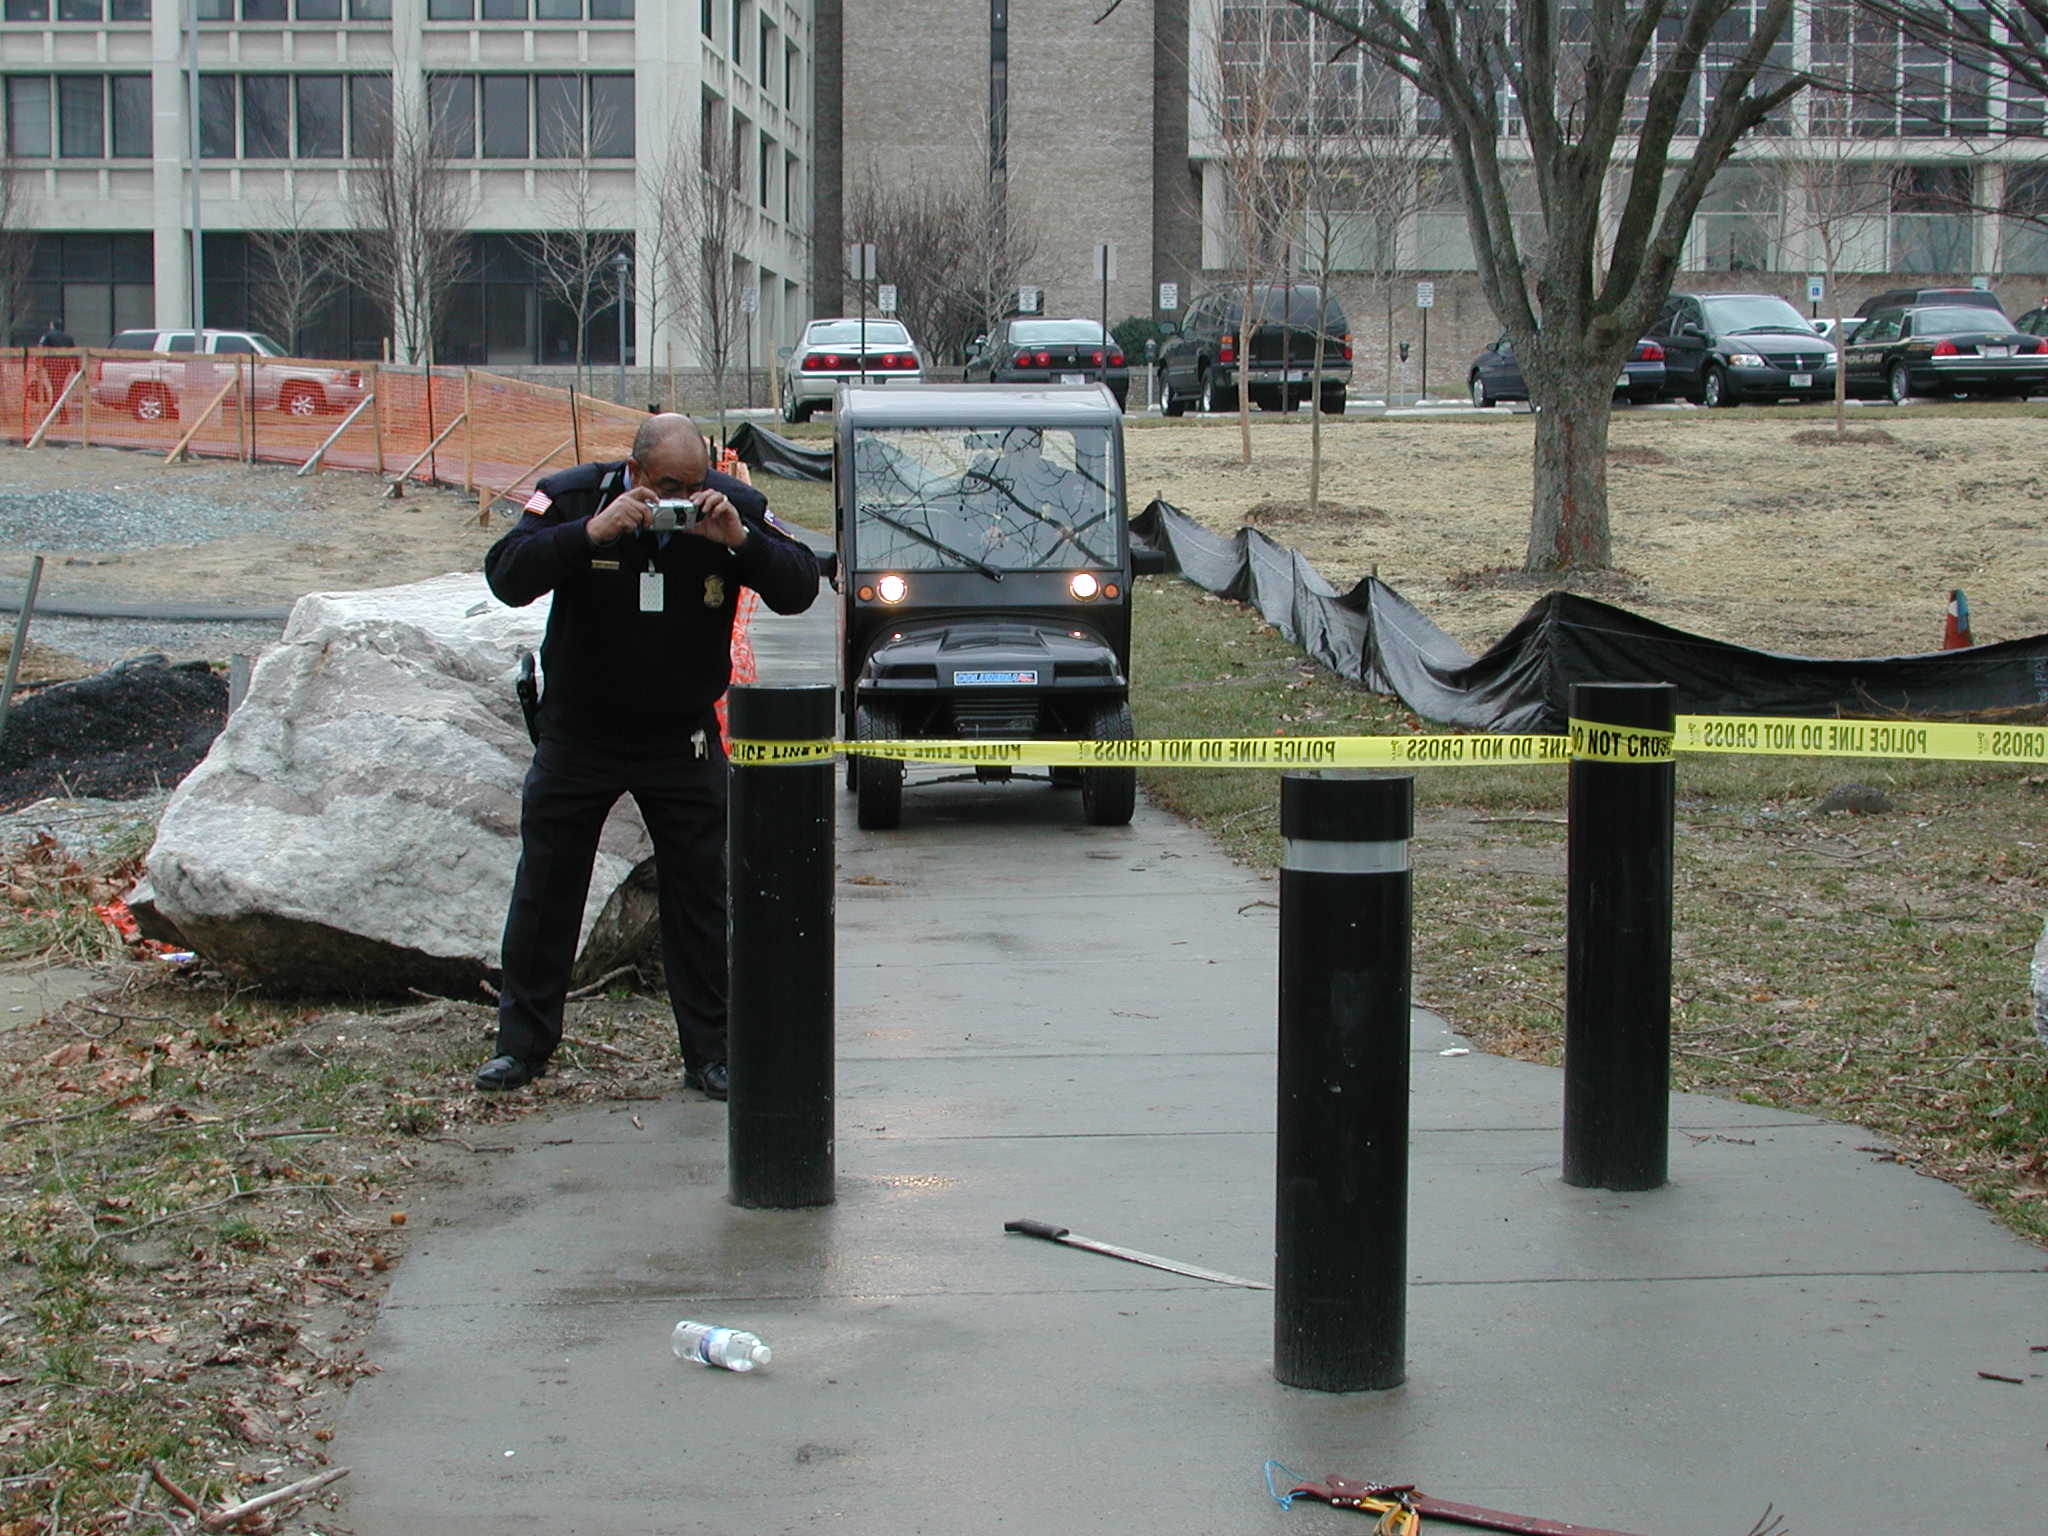 Outdoor crime scene officer taking a phot and police cart arriving 2.JPG